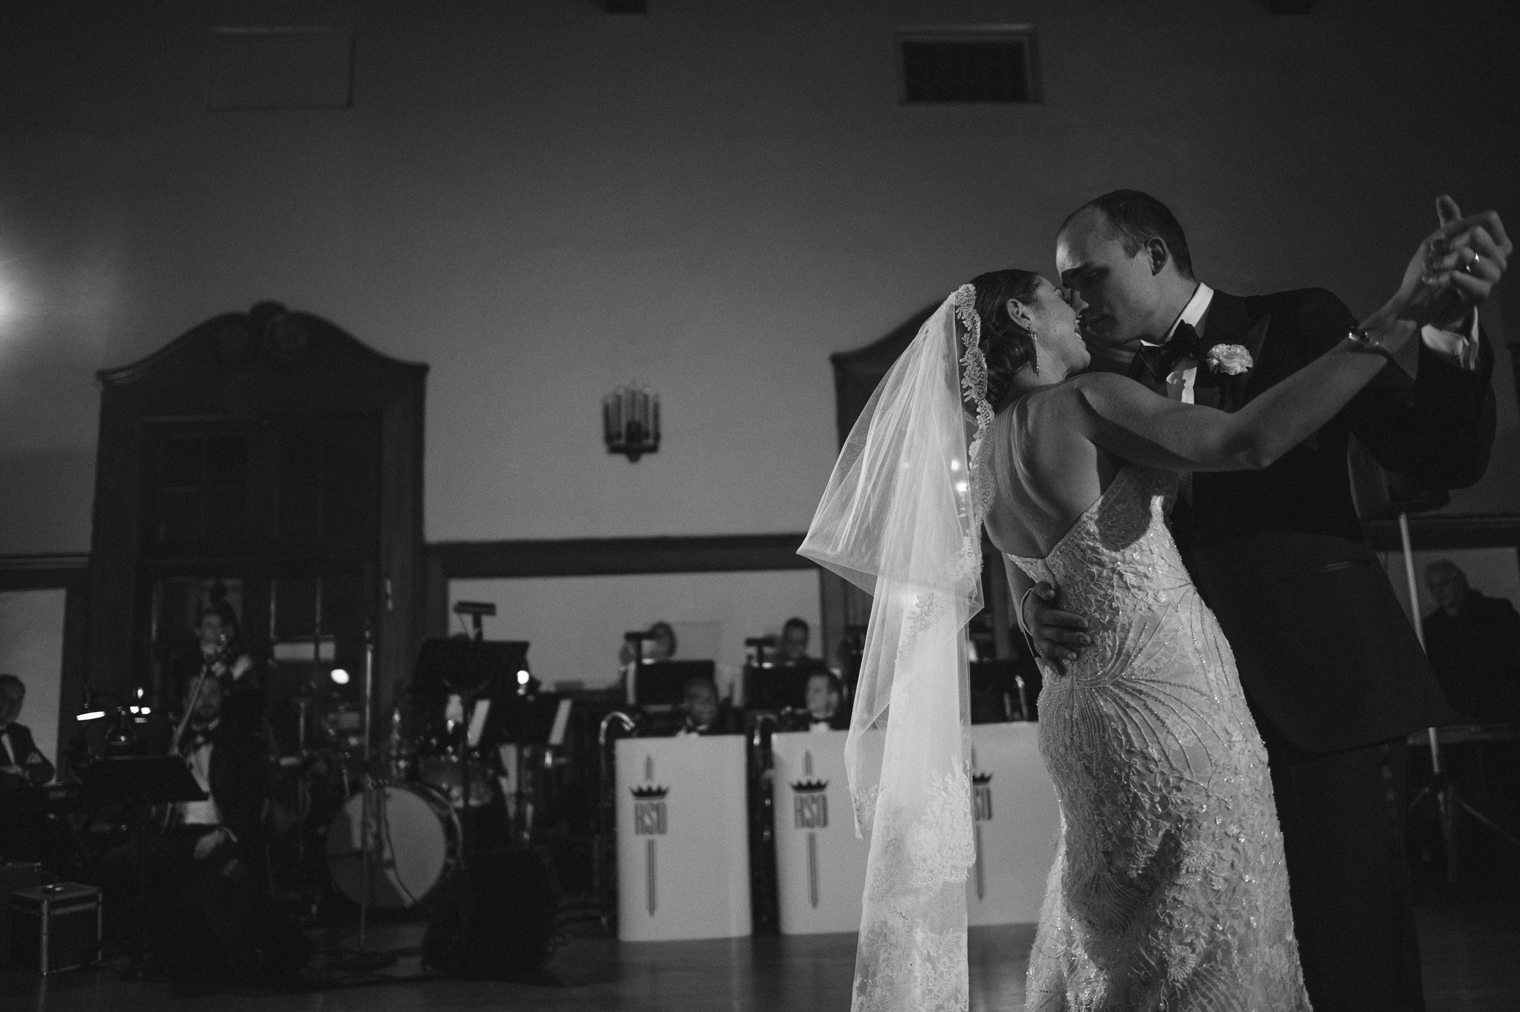 The bride and groom share their first dance at the Detroit Yacht Club wedding by Michigan photographer Heather Jowett.